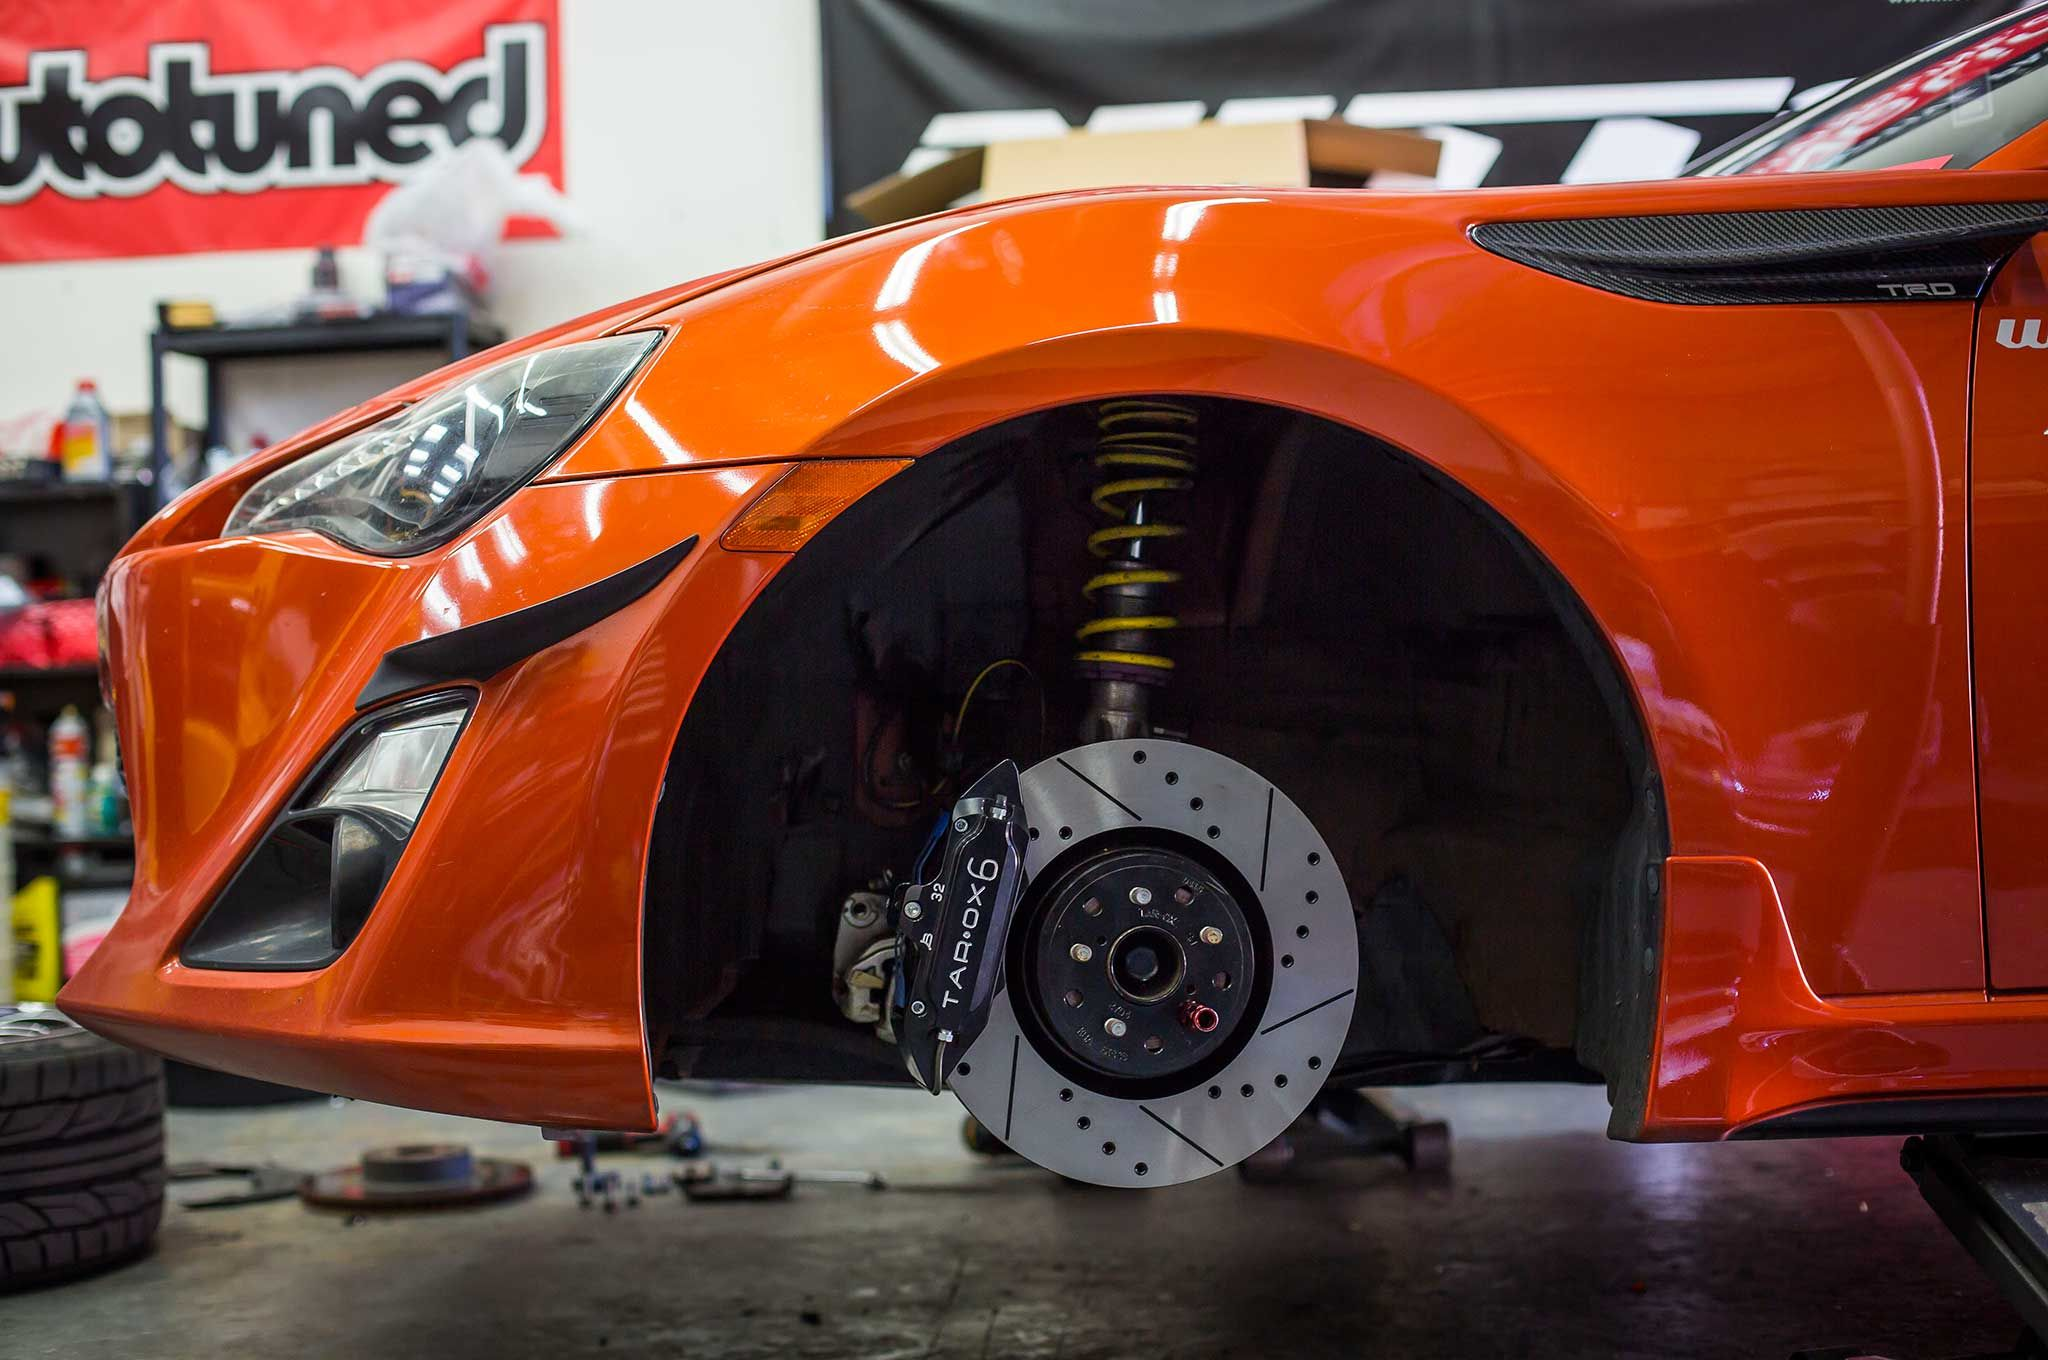 Super Street Project FR-S gets a much-needed TAROX upgrade!